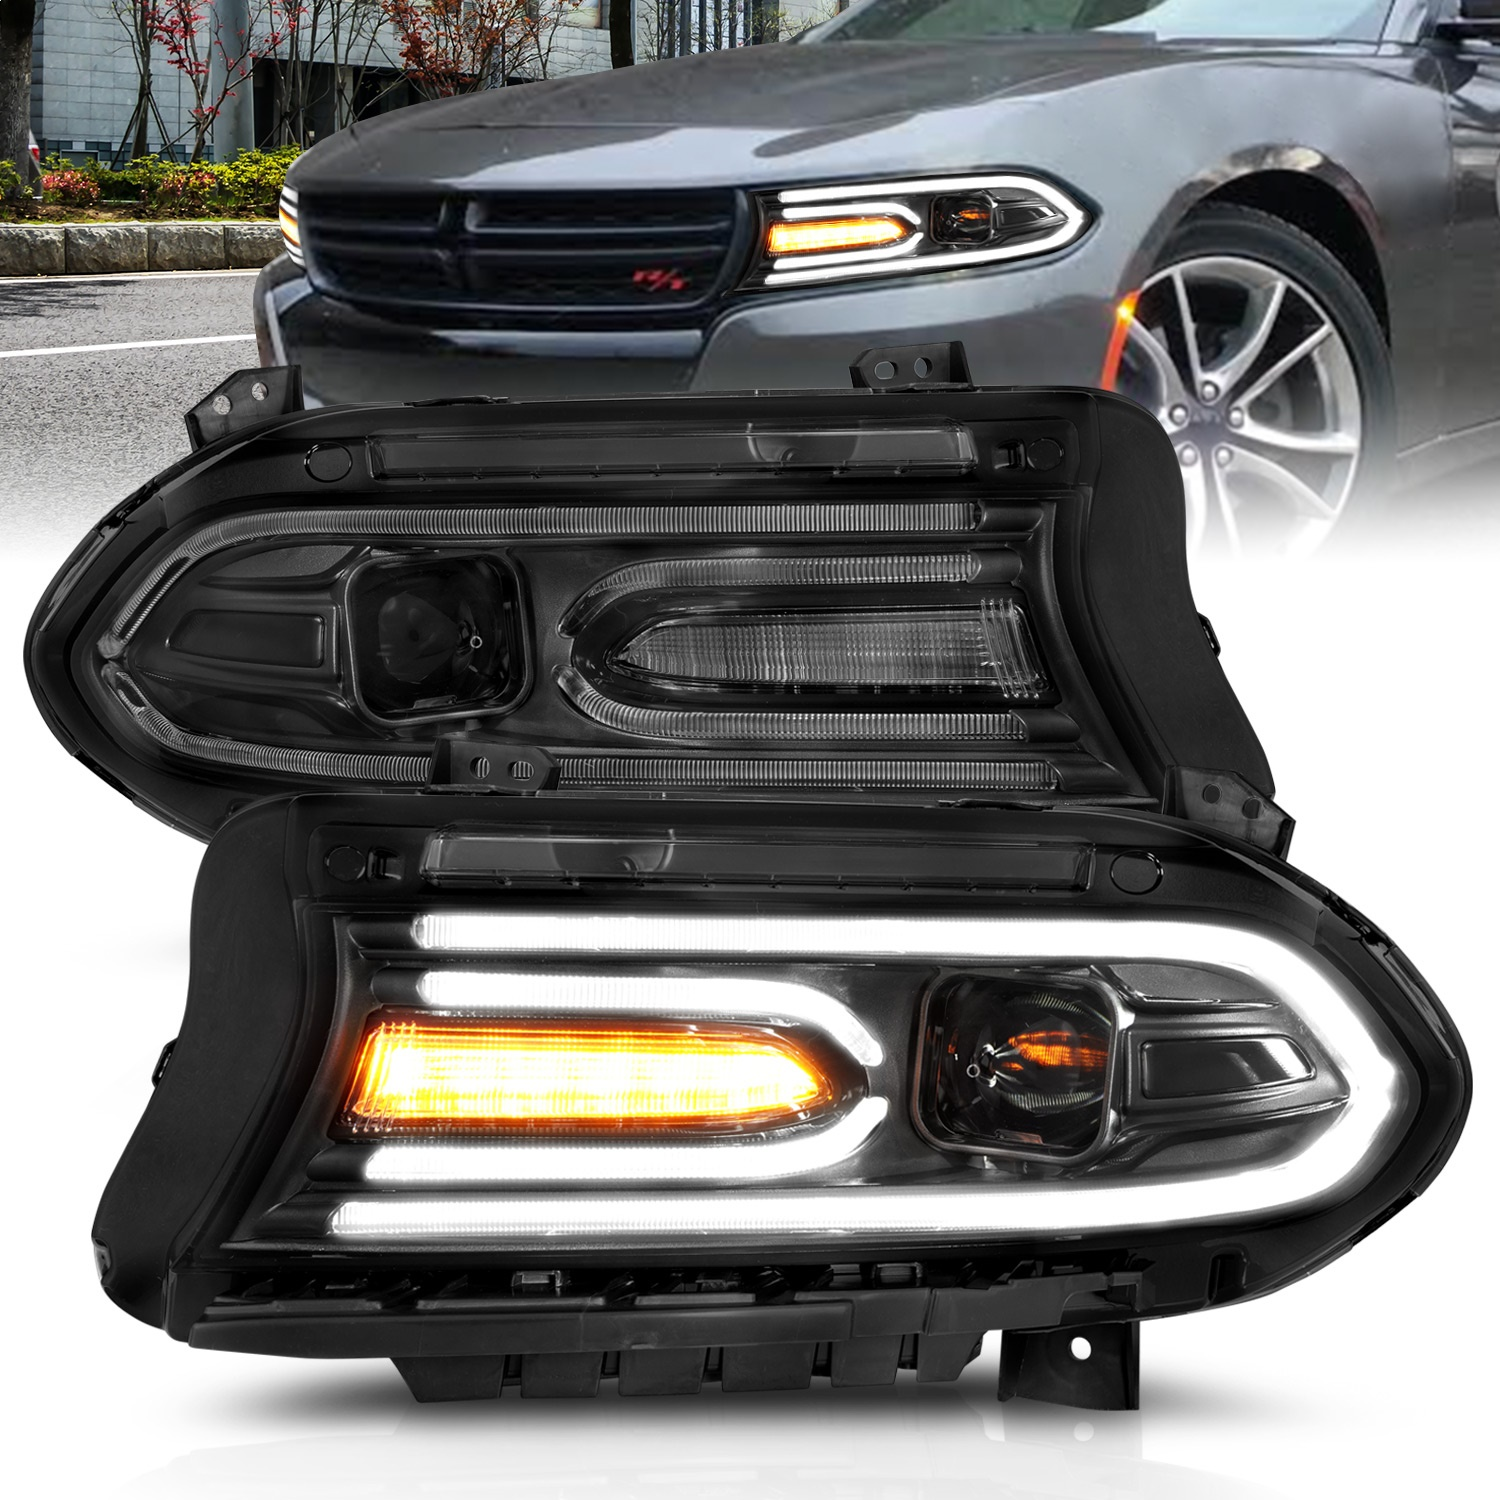 Anzo USA 121559 Projector Headlight Set Fits 15-18 Charger